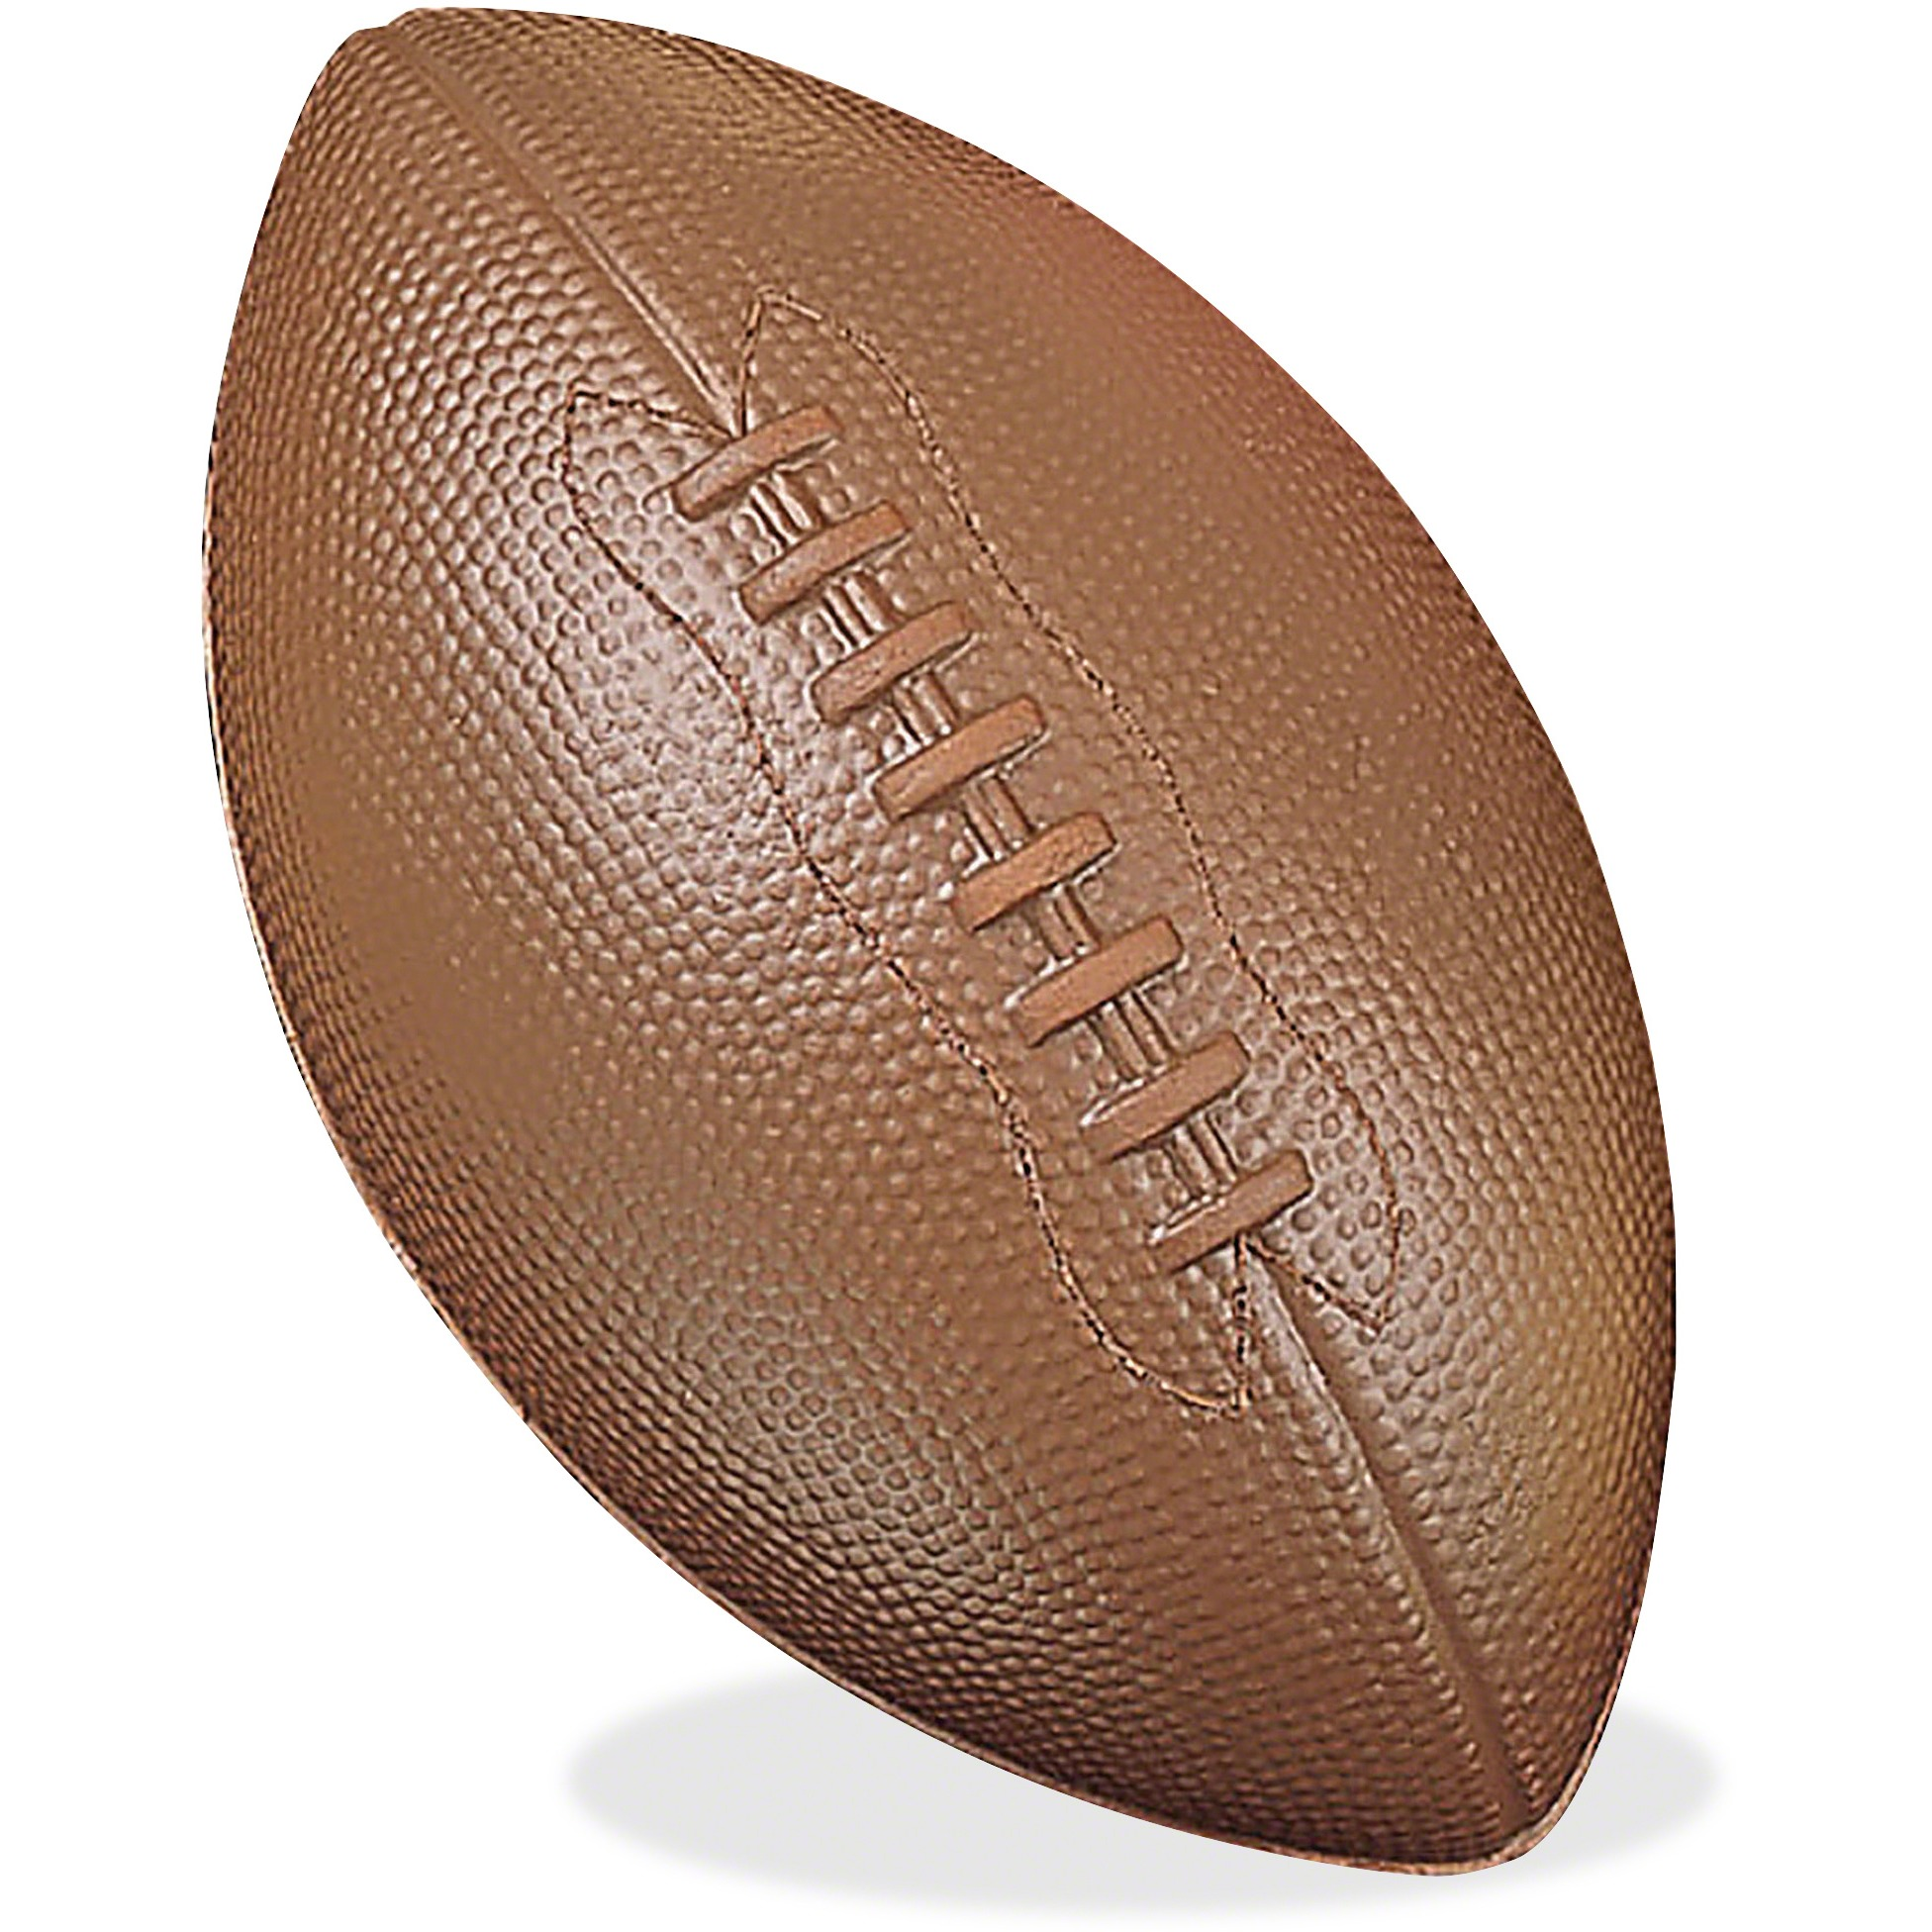 Champion Sport s Junior-size Foam Football, Brown, 1 Each (Quantity) by CHAMPION SPORT